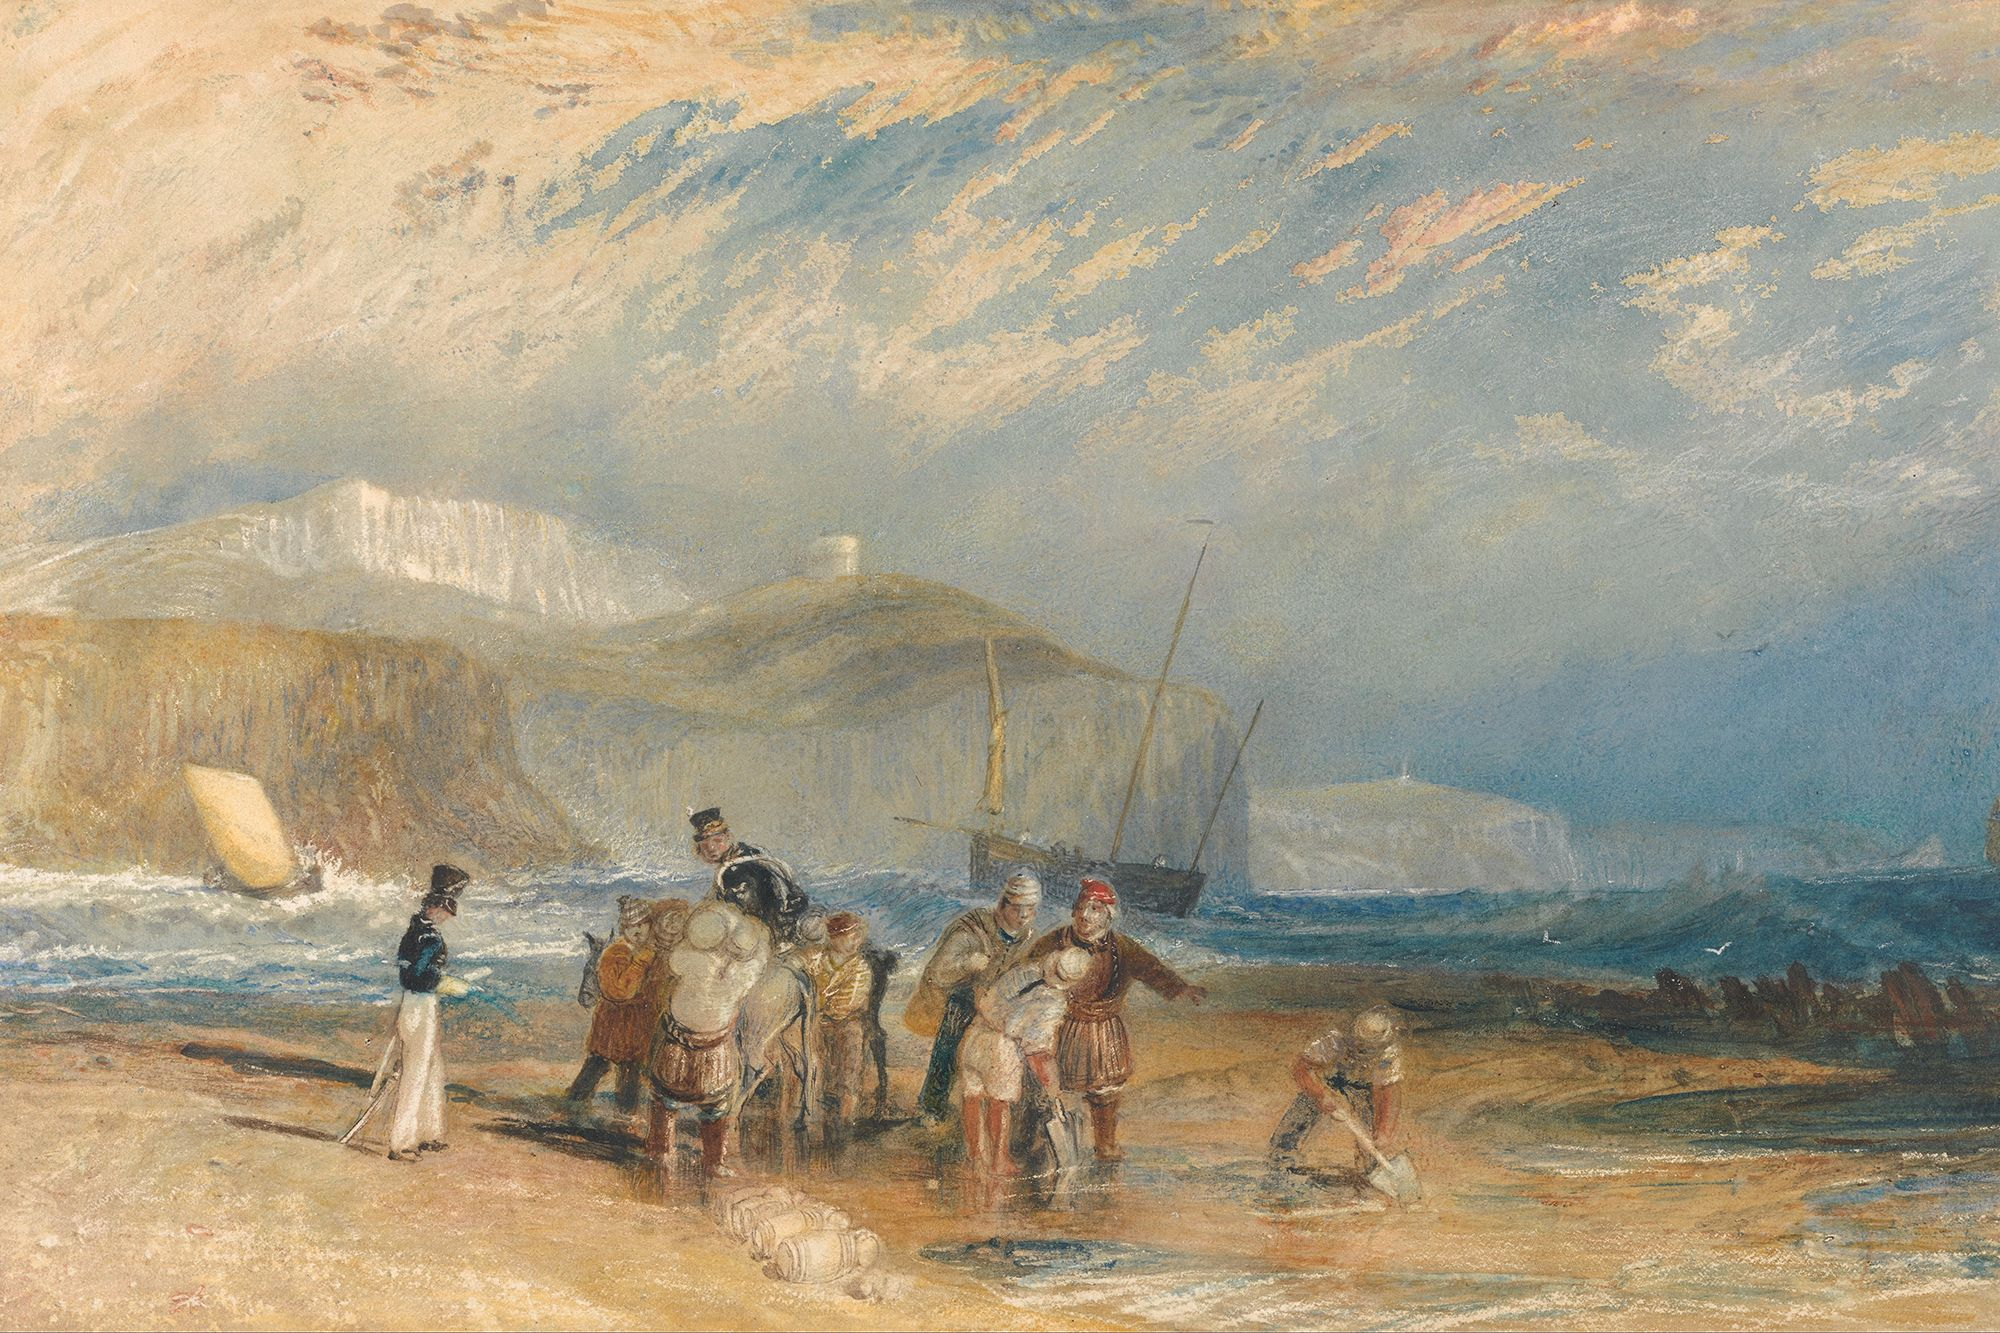 COAST FROM FOLKESTONE HARBOUR TO DOVER. suggested date : 1829 / 1830. watercolour. 29 × 45 cm. Provenance : Turner's Picturesque Views in England and Wales. USA. Paul Mellon Collection. Yale Center for British Art.